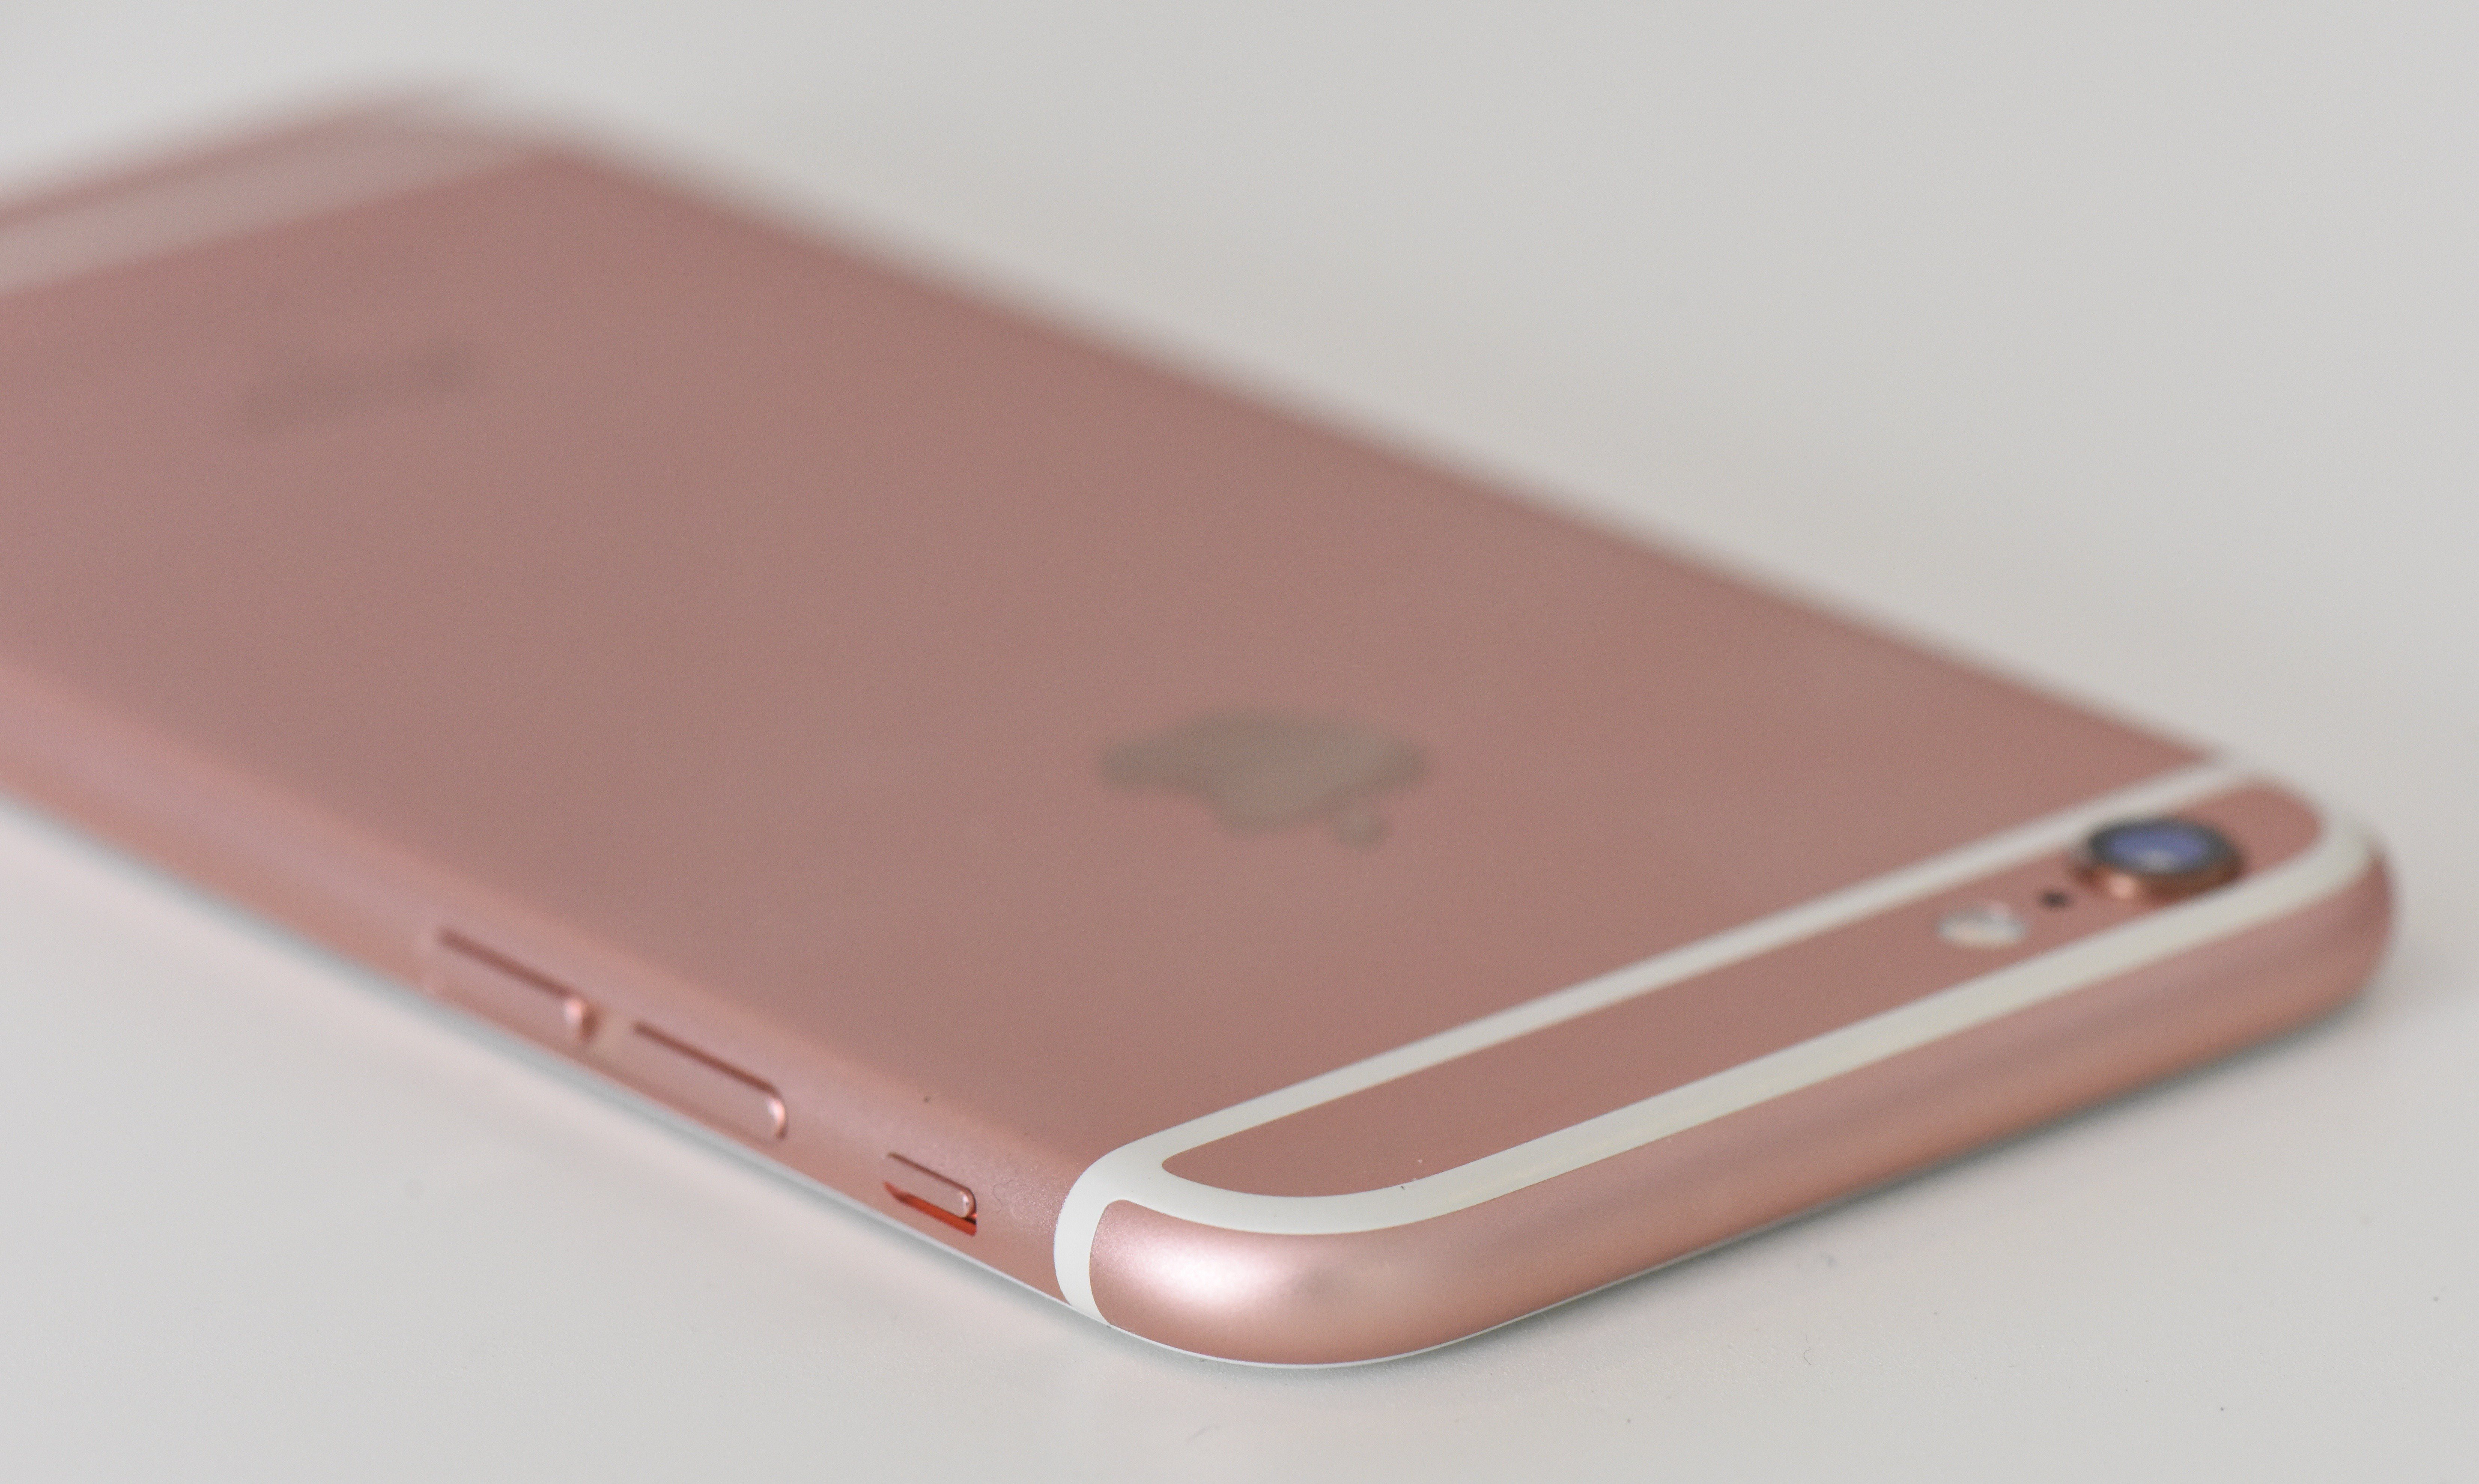 purported iphone 7 rose gold back panel leaks